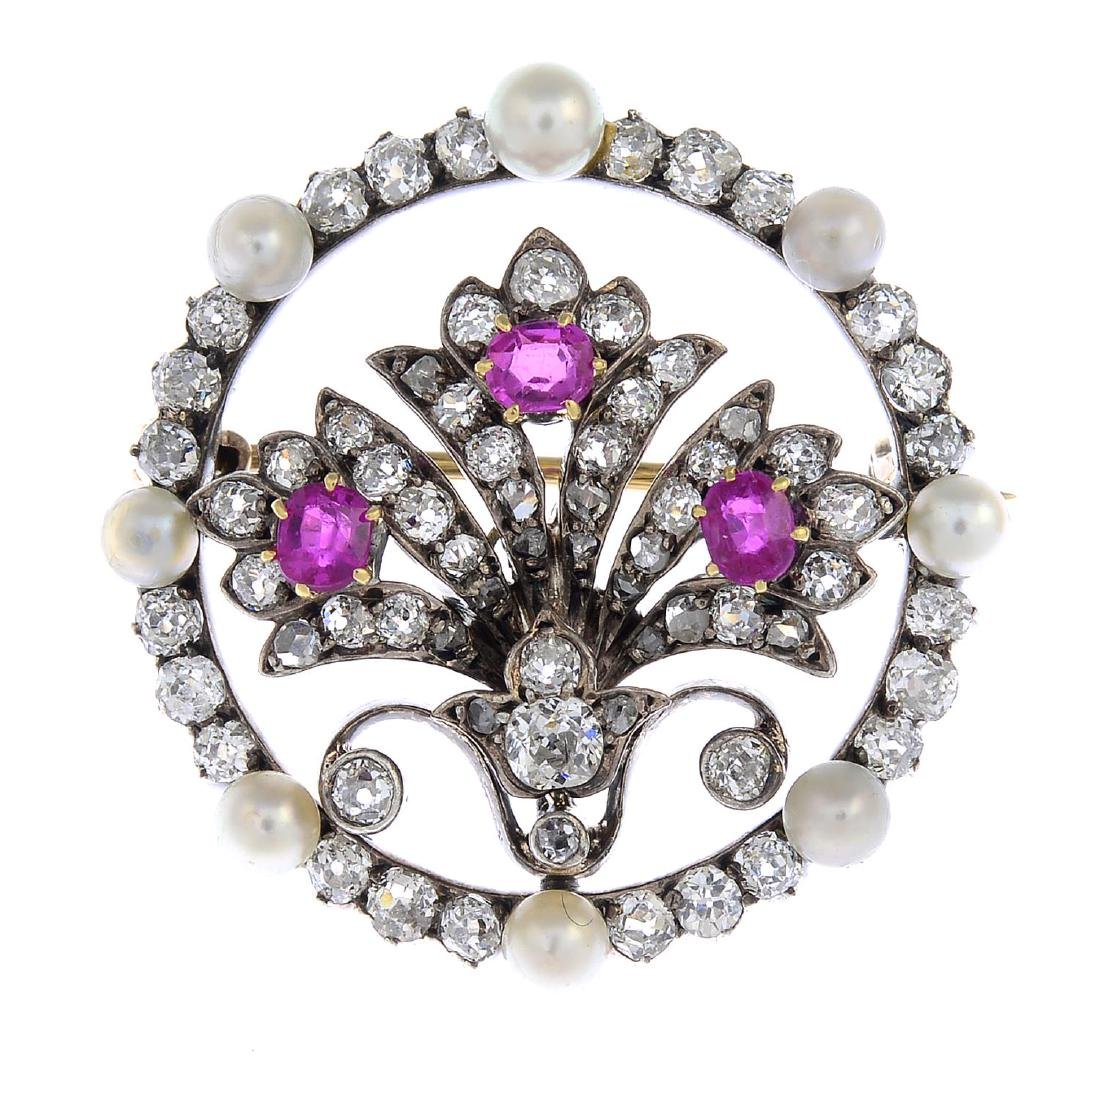 A late Victorian silver and gold, diamond and gem-set